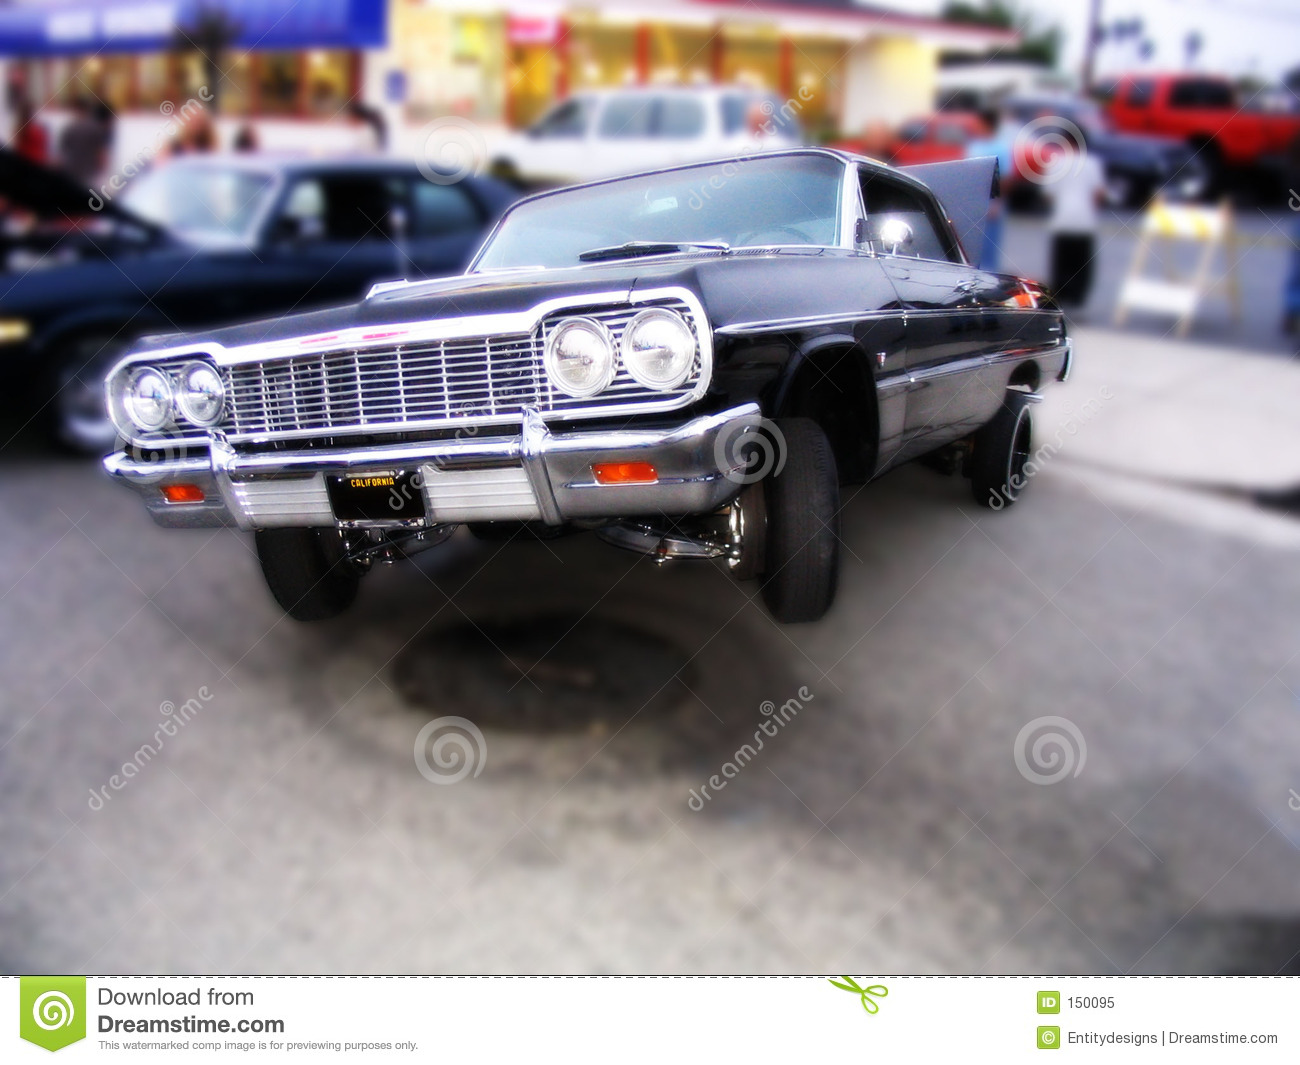 Lowrider Rims And Tires >> 3 Wheel Motion stock image. Image of raza, lowrider, three - 150095